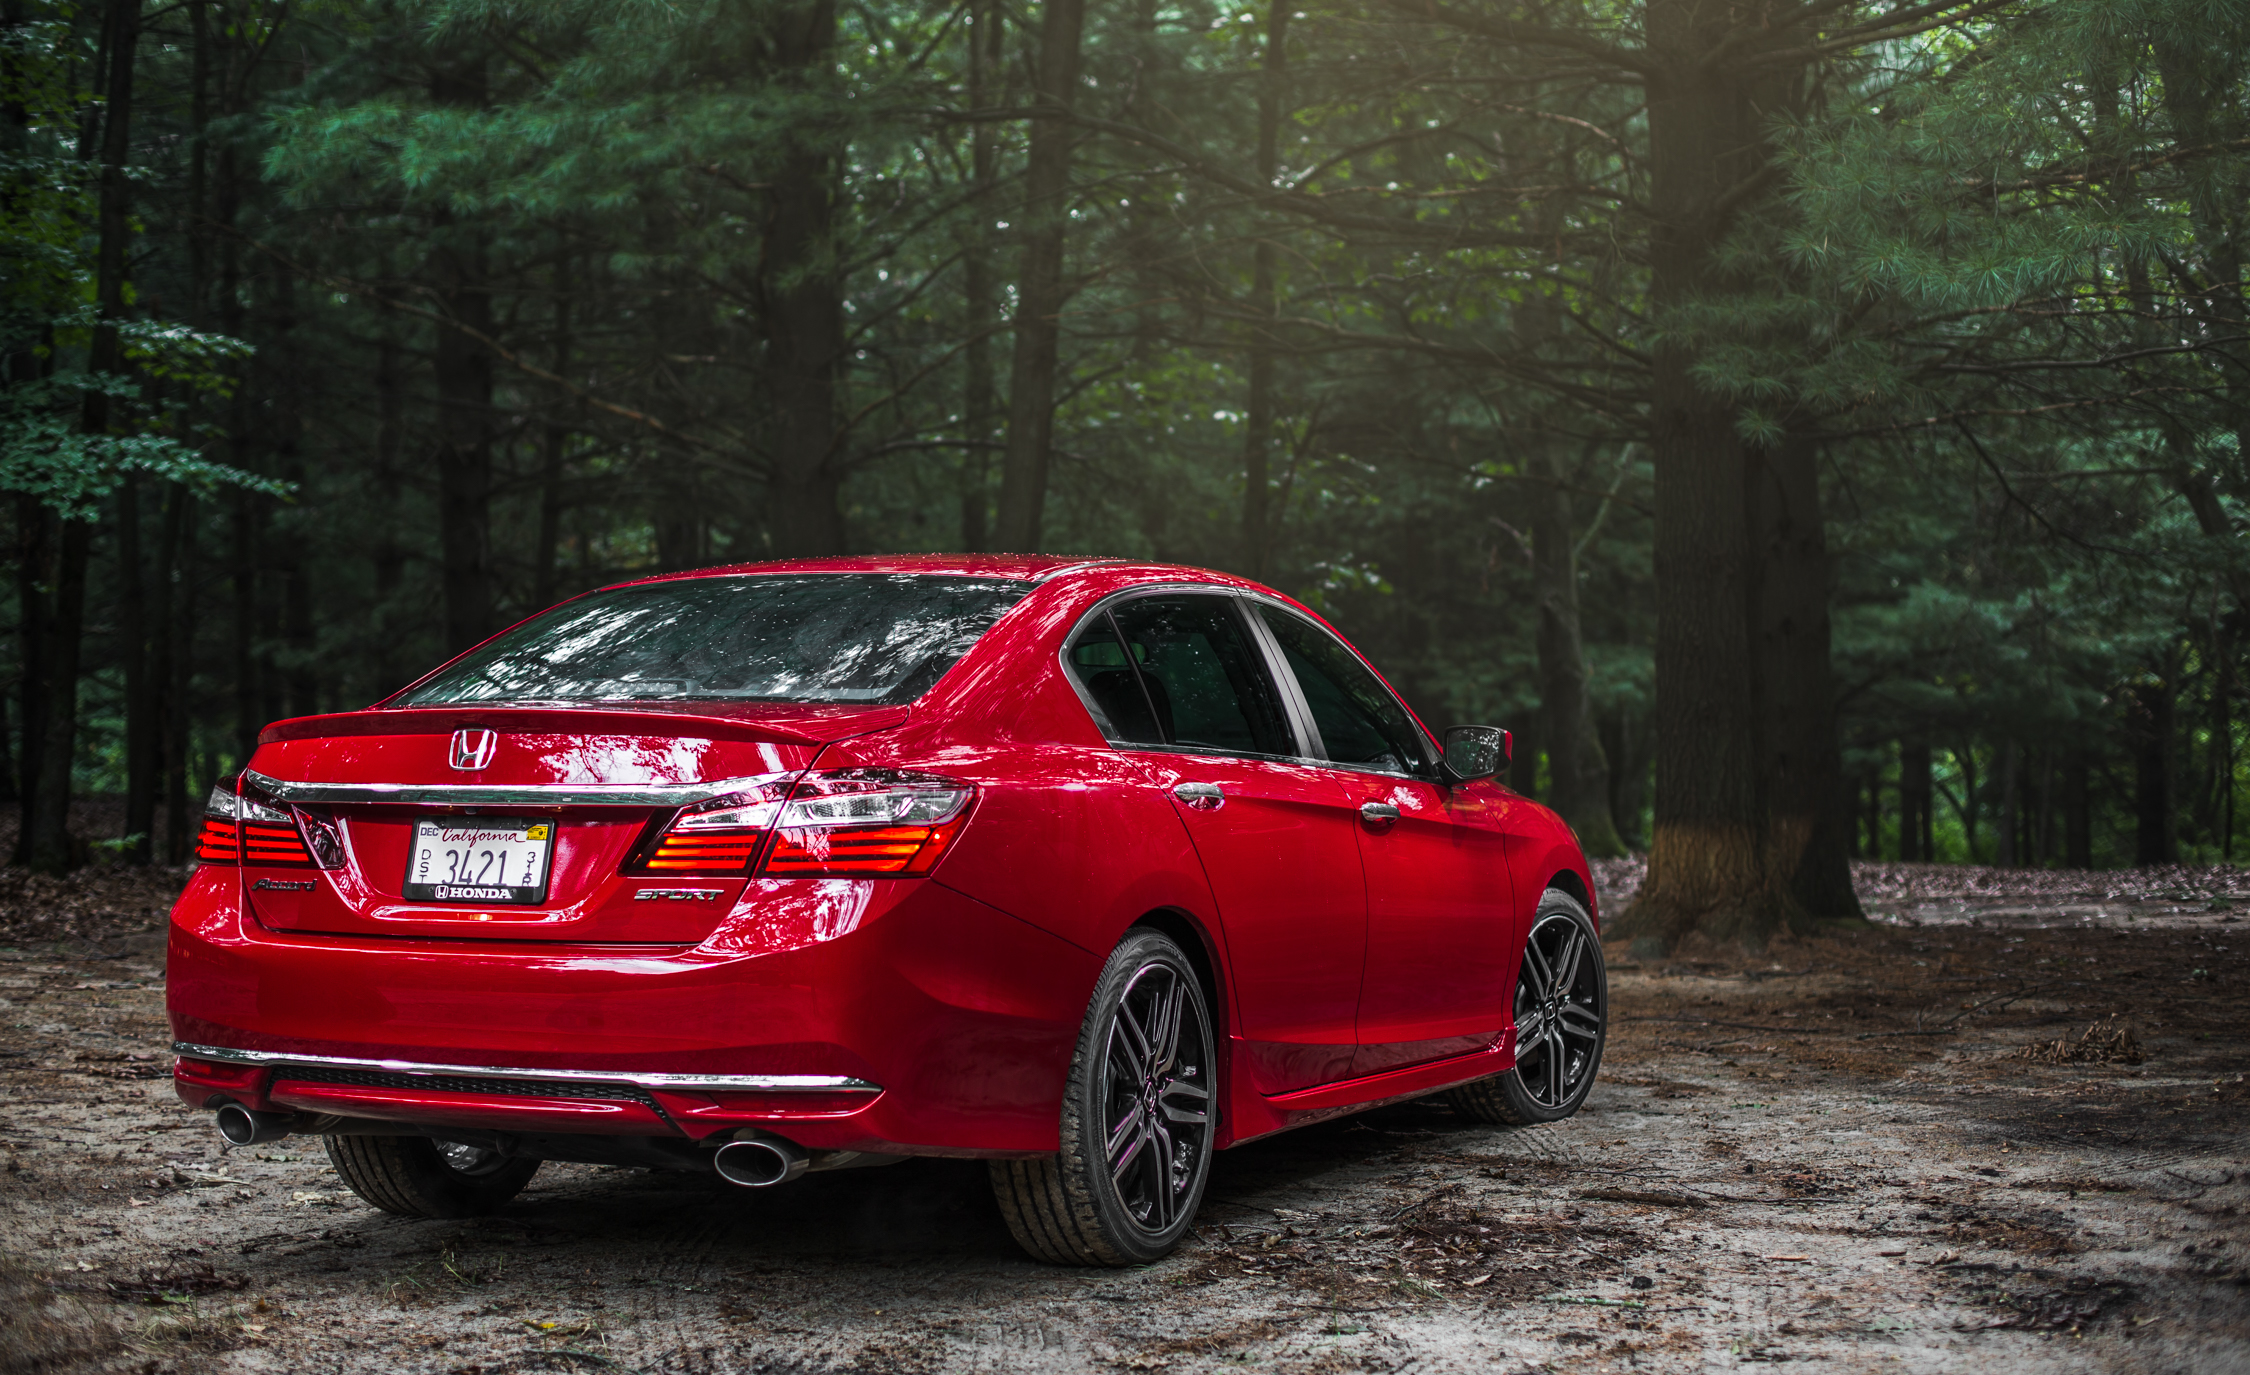 2016 Honda Accord Sport Exterior Full Rear and Side